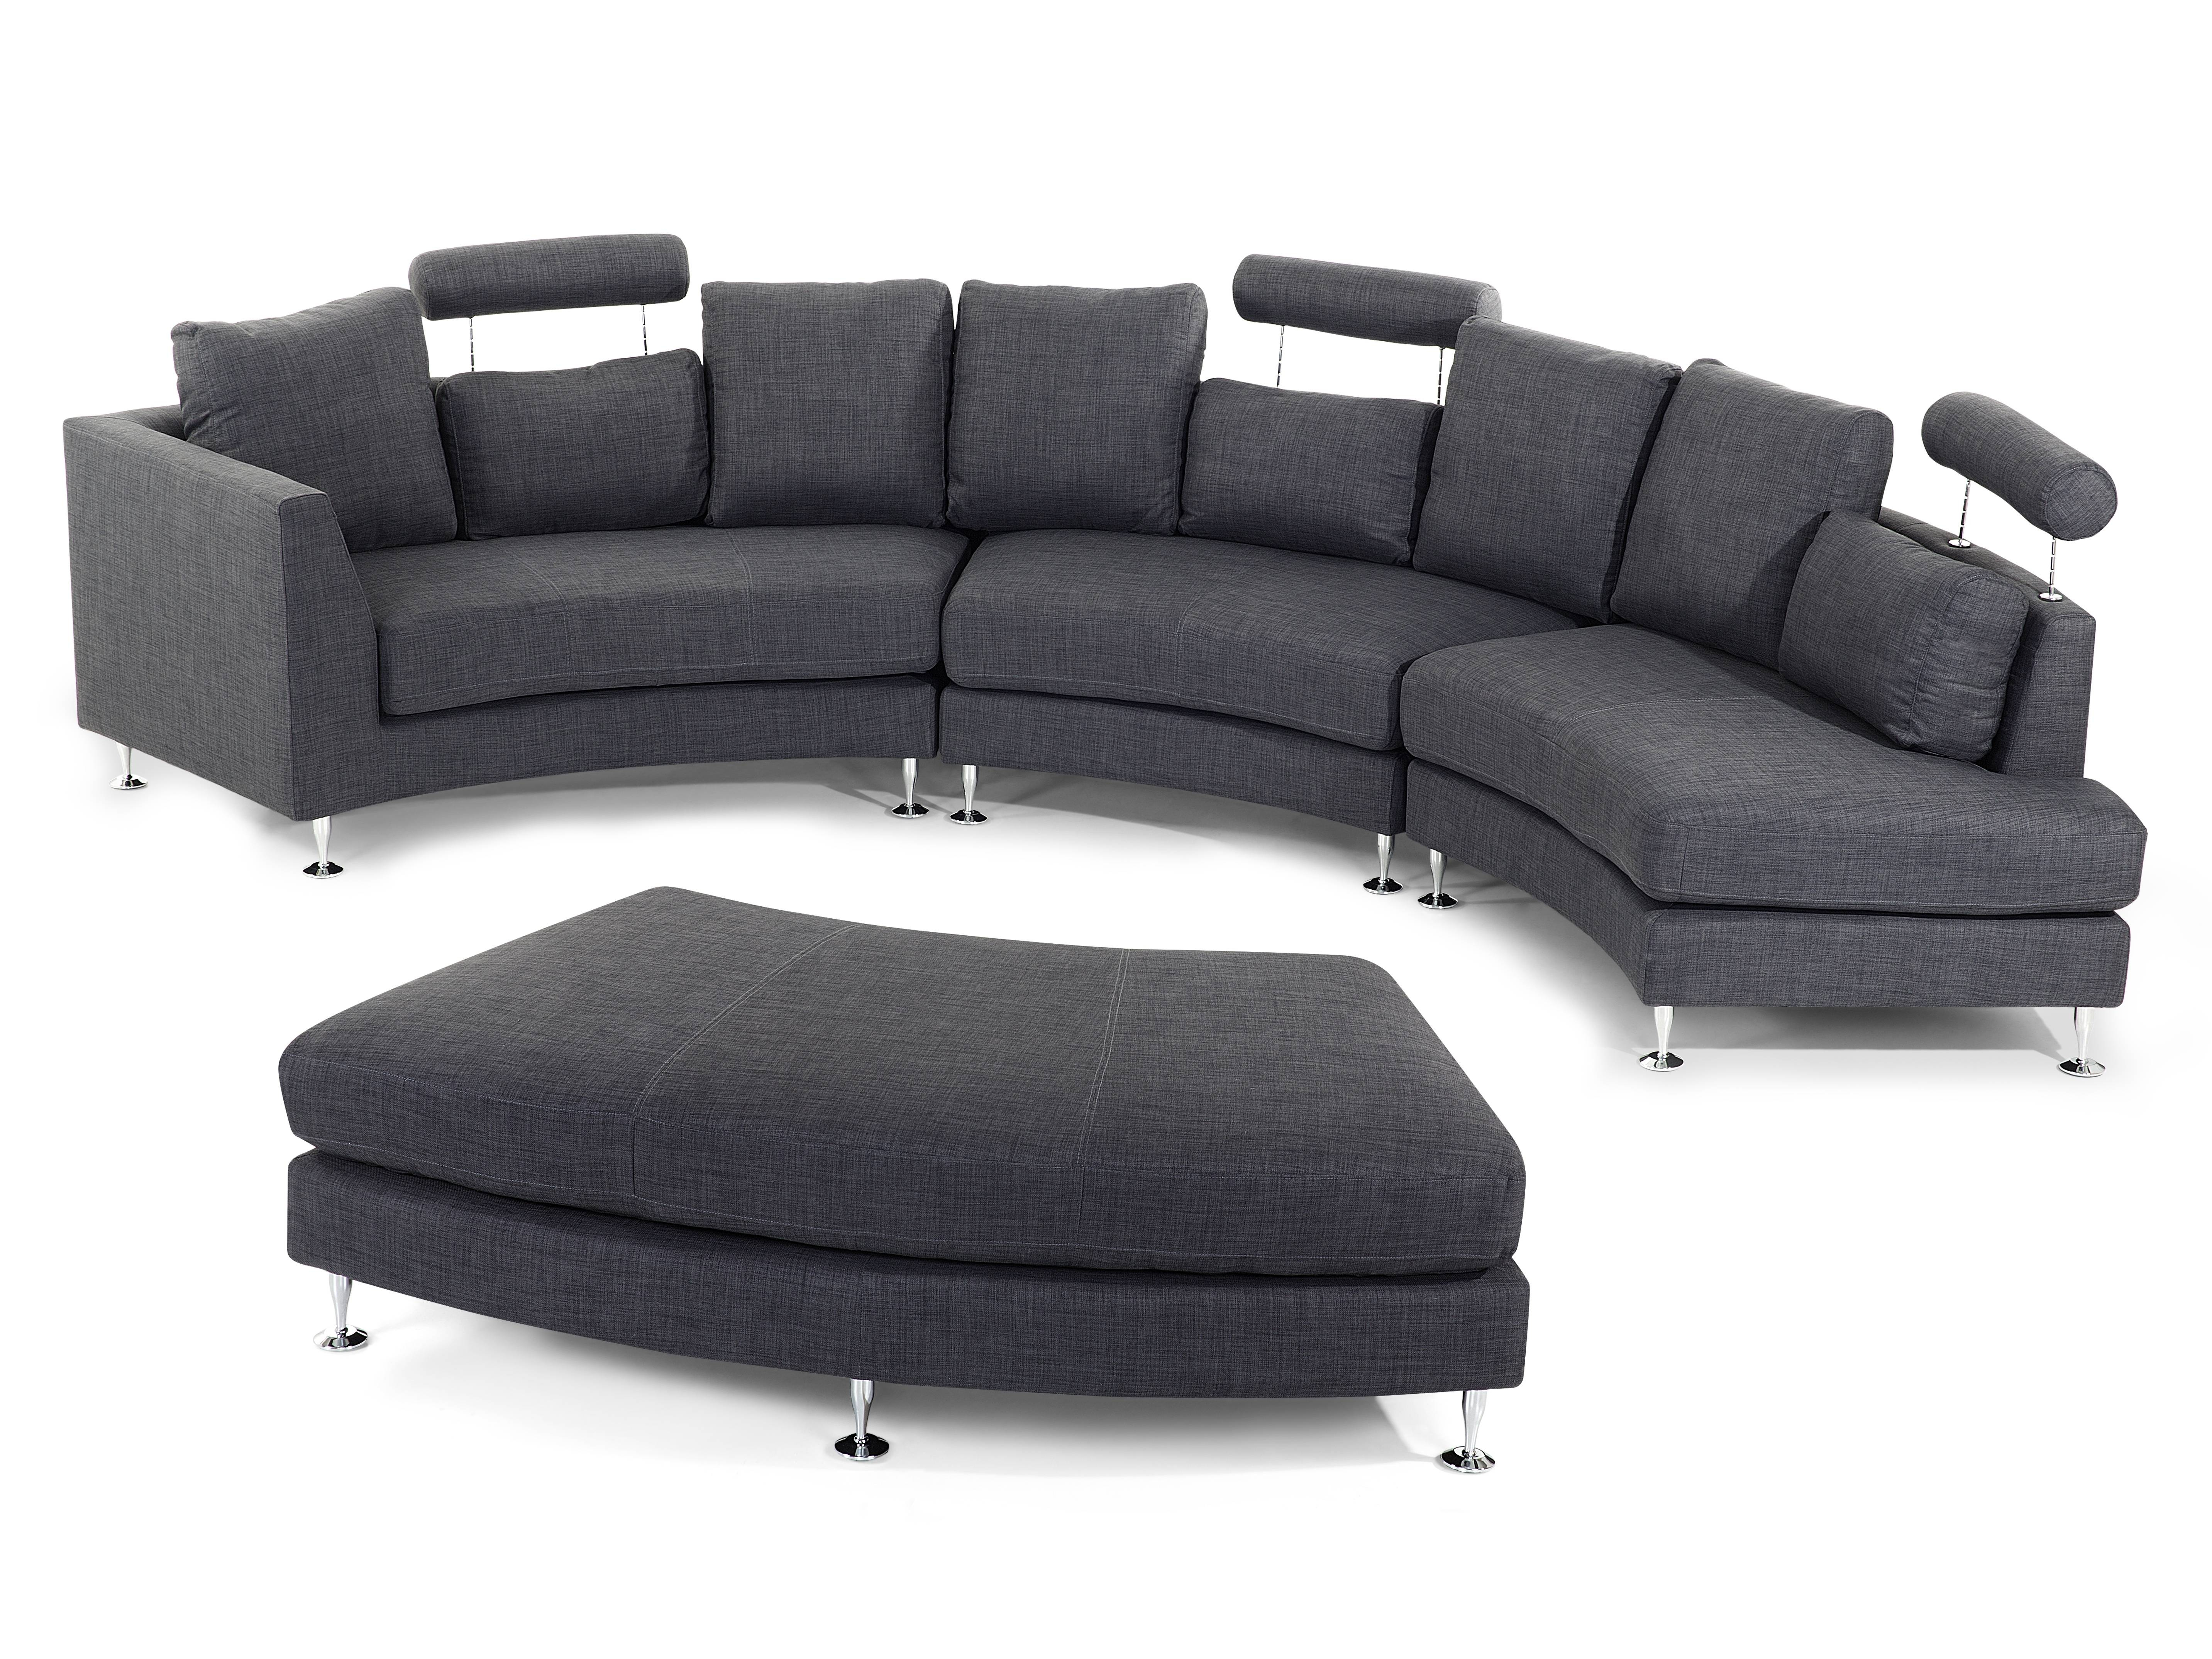 New Tweed Sectional Sofa 65 For Your Media Sofa Sectionals With with Media Sofa Sectionals (Image 17 of 25)